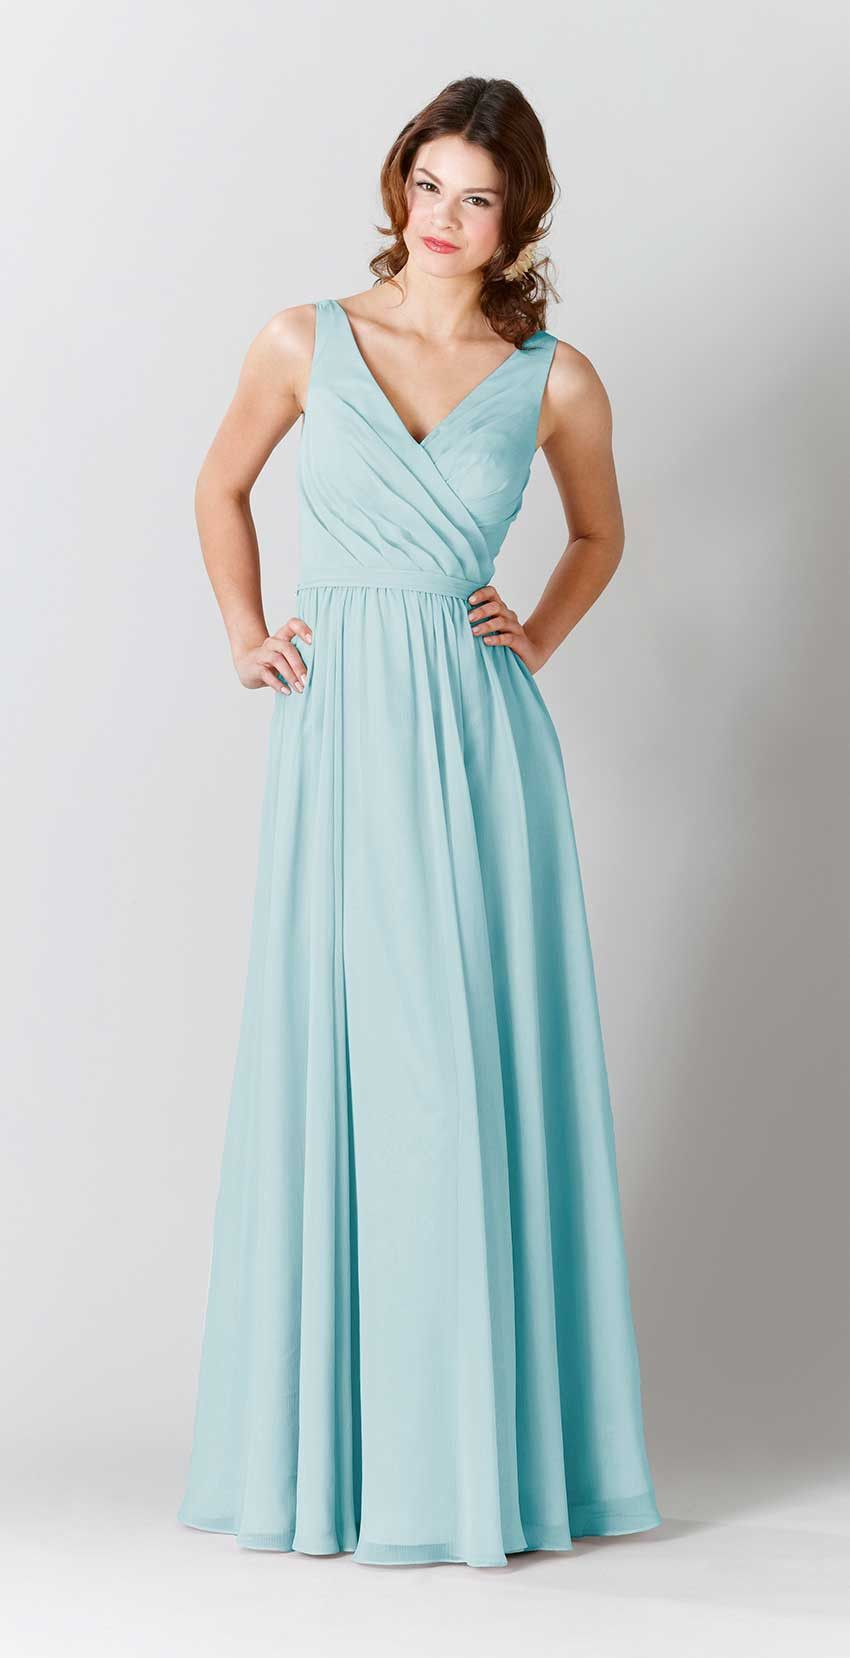 Anna fitted bodice anna and shape a long mint chiffon bridesmaid dress with flattering straps kennedy blue bridesmaid dress ombrellifo Images